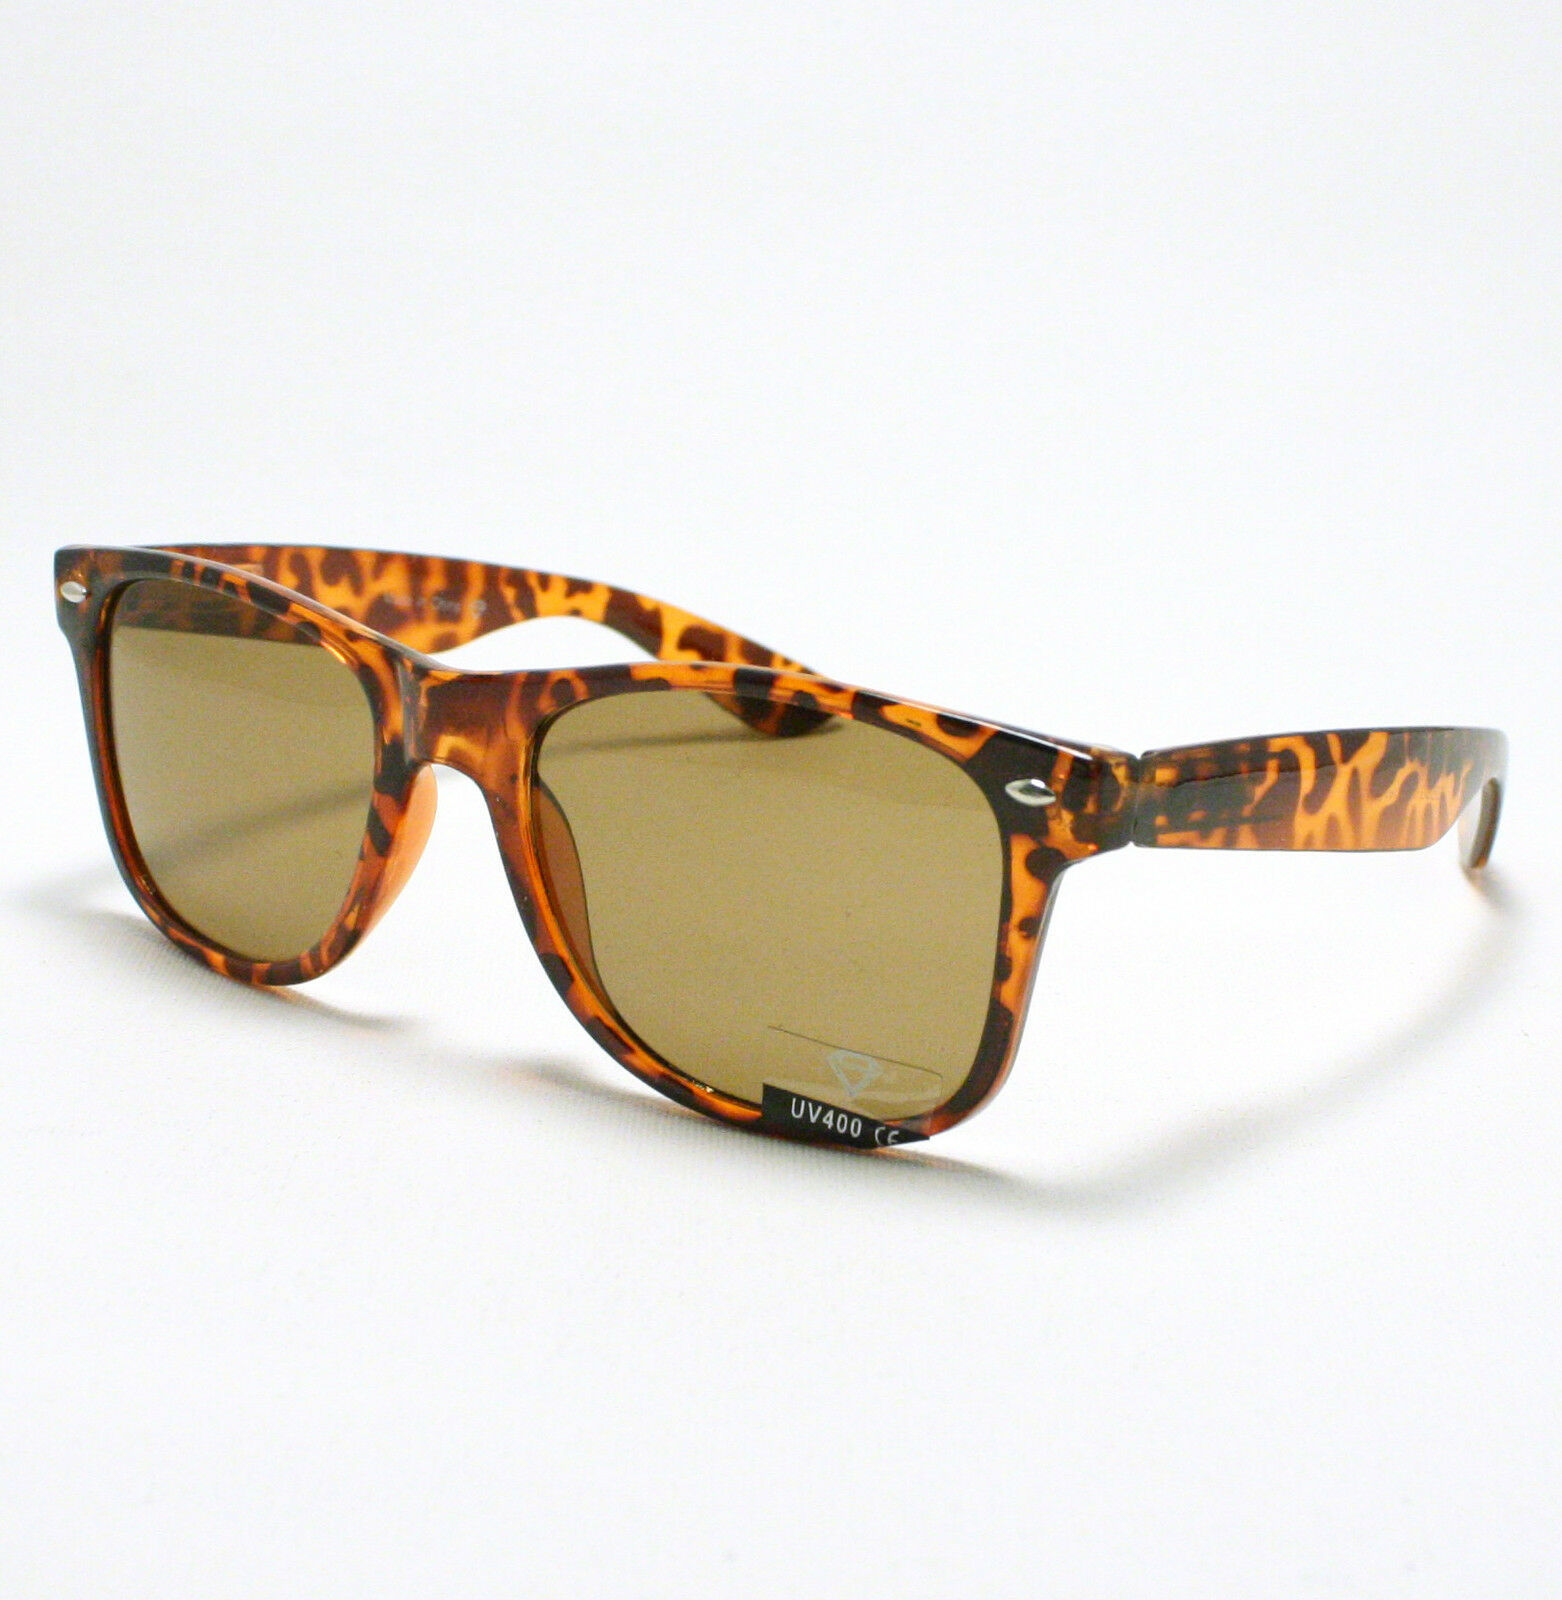 80's Classic Vintage OLD SCHOOL Sunglasses TURTLE SHELL image 2